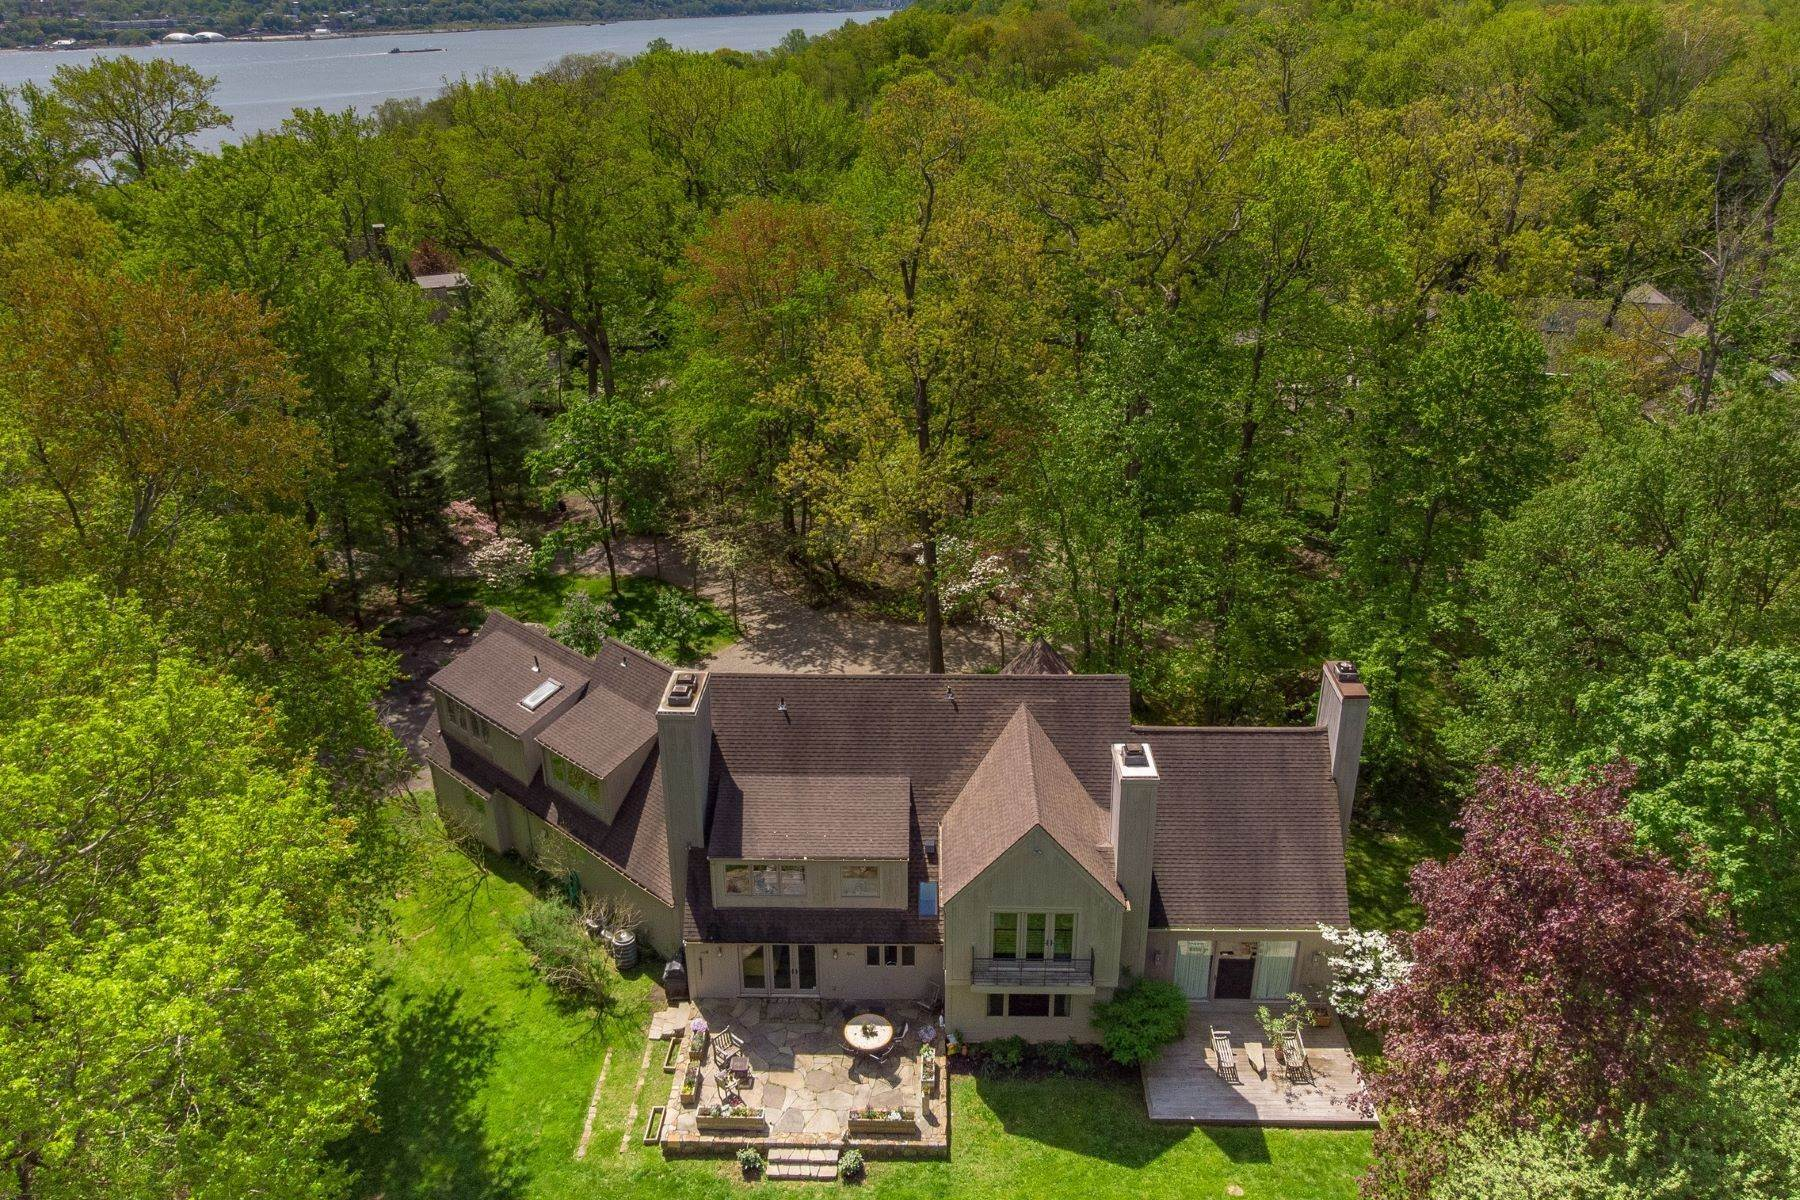 Single Family Homes for Sale at The Vineyard House 50 Woods Road Palisades, New York 10964 United States